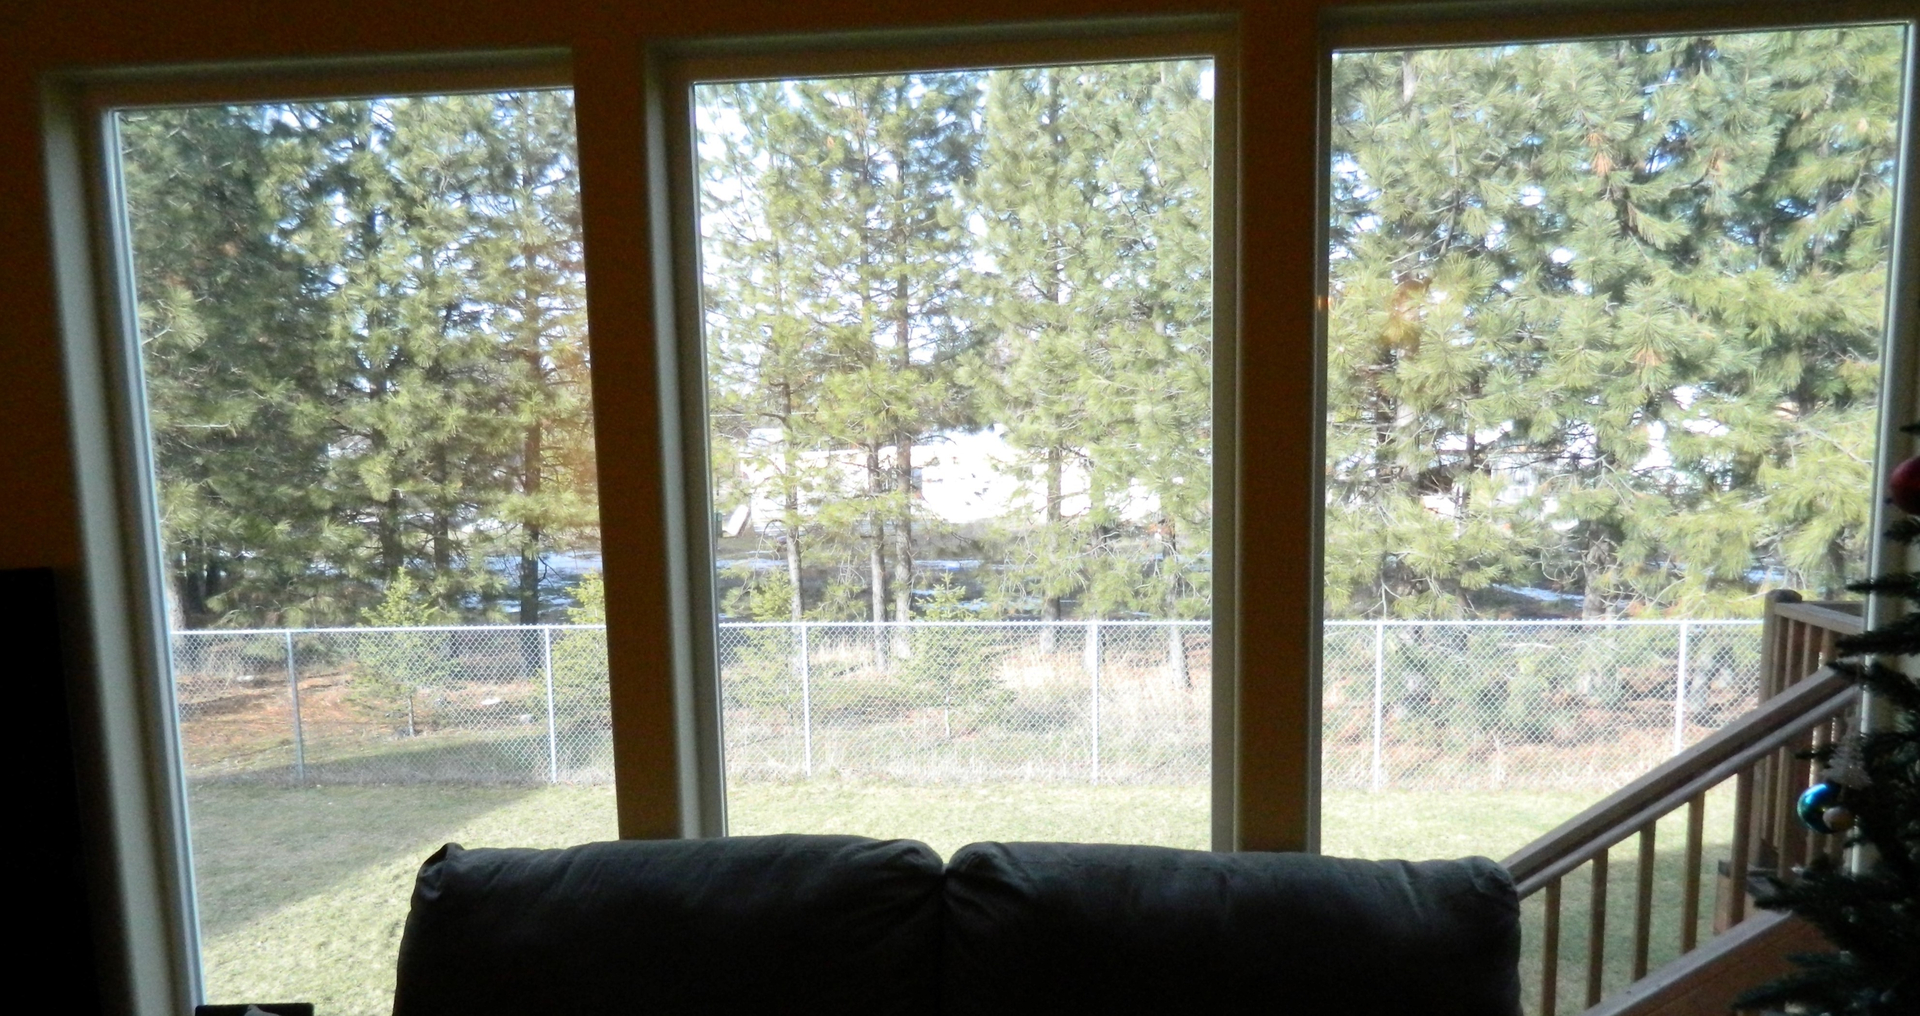 Daytime Privacy Window Filmstints Block Unwanted Visibility